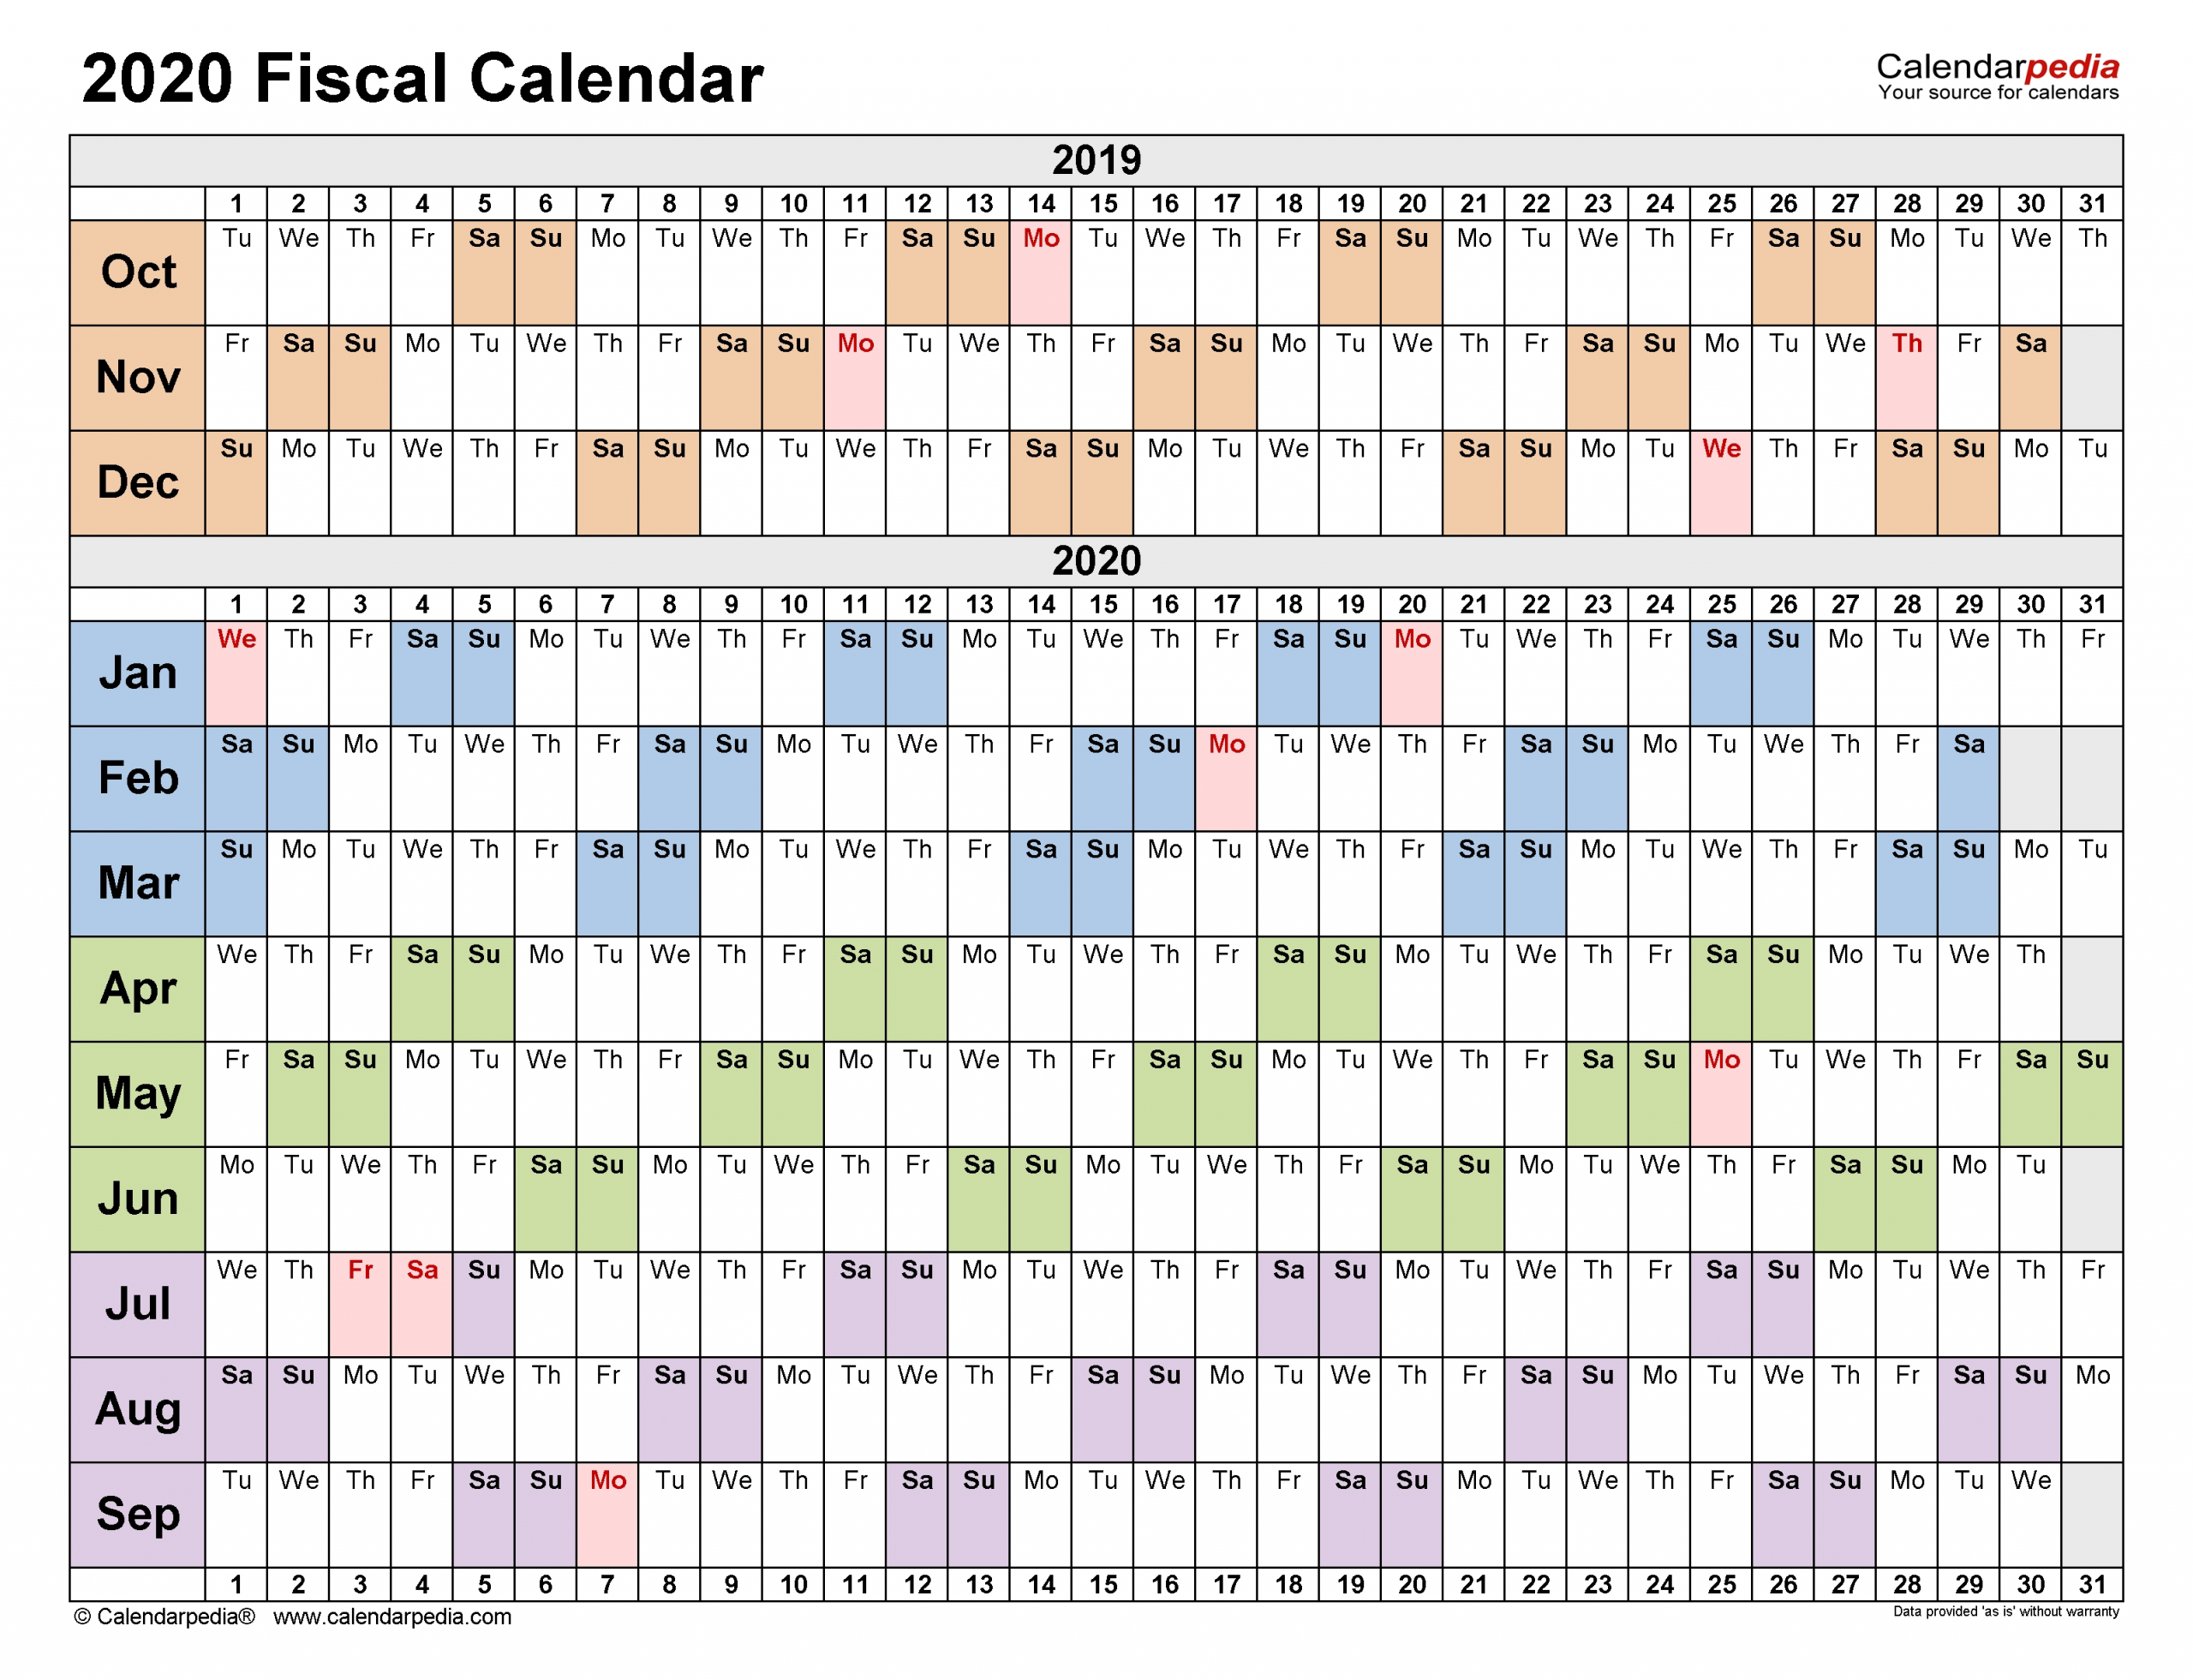 Fiscal Calendars 2020 - Free Printable Pdf Templates with regard to Financial Calendar 2019-2020 In Weeks